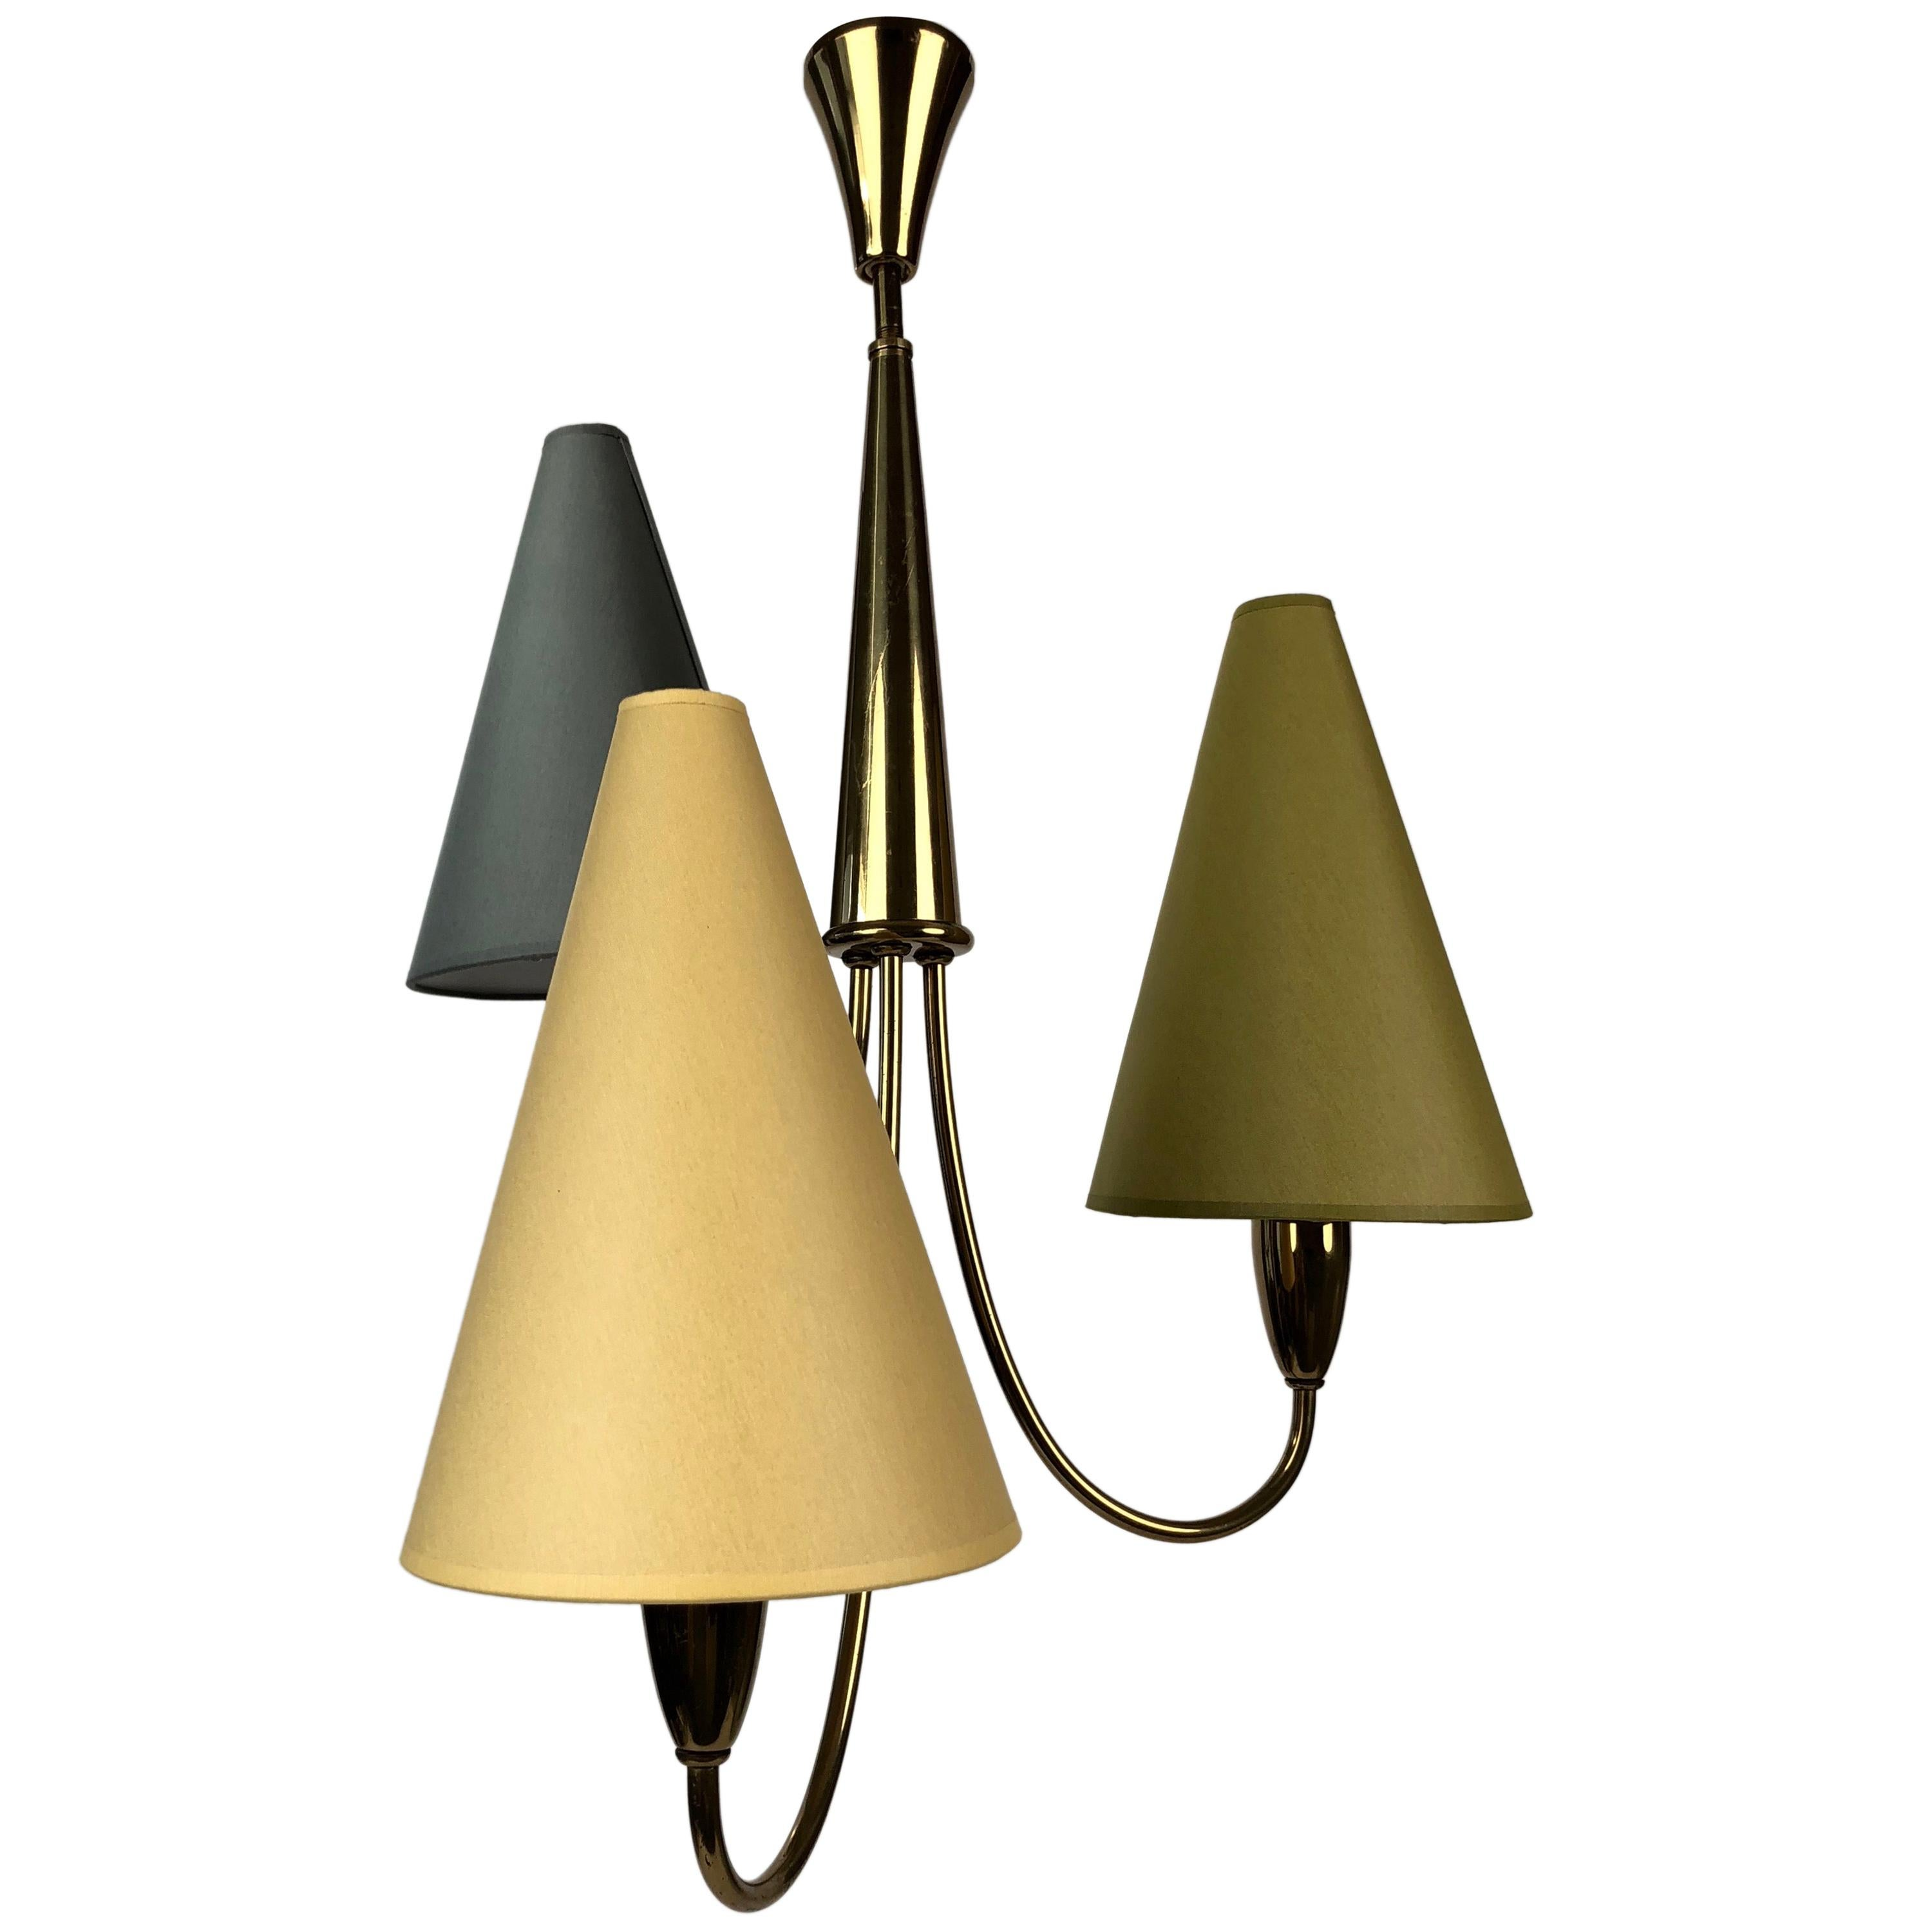 Small Midcentury Chandelier in Brass with Three Colorful Shades